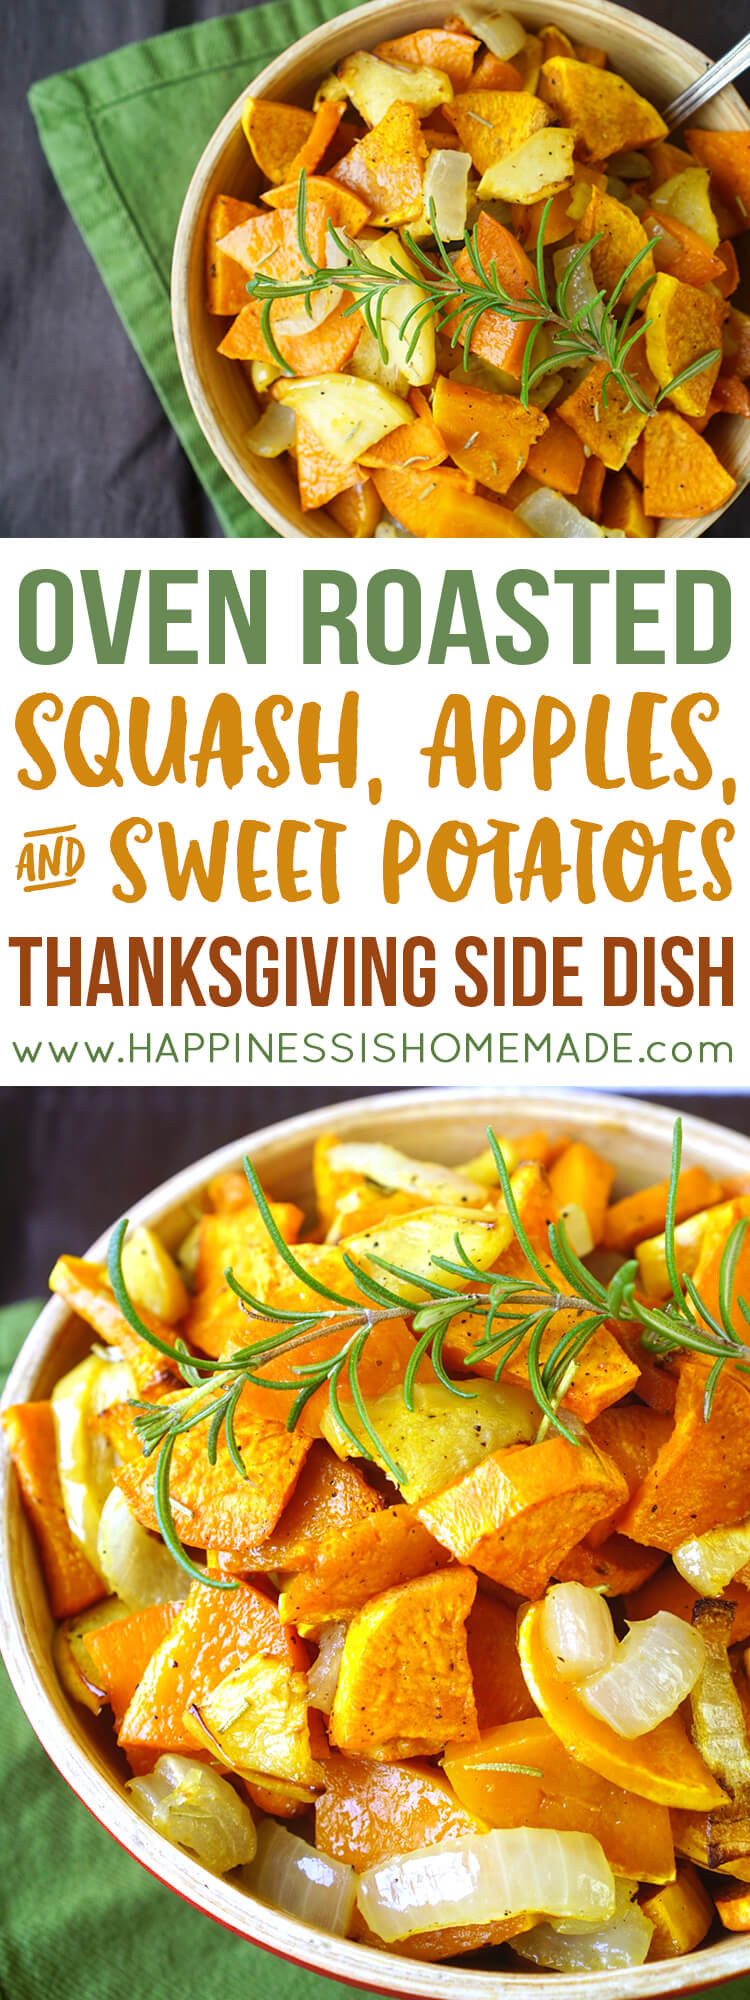 Sweet Potatoes For Thanksgiving  Roasted Sweet Potatoes Squash & Apples Happiness is